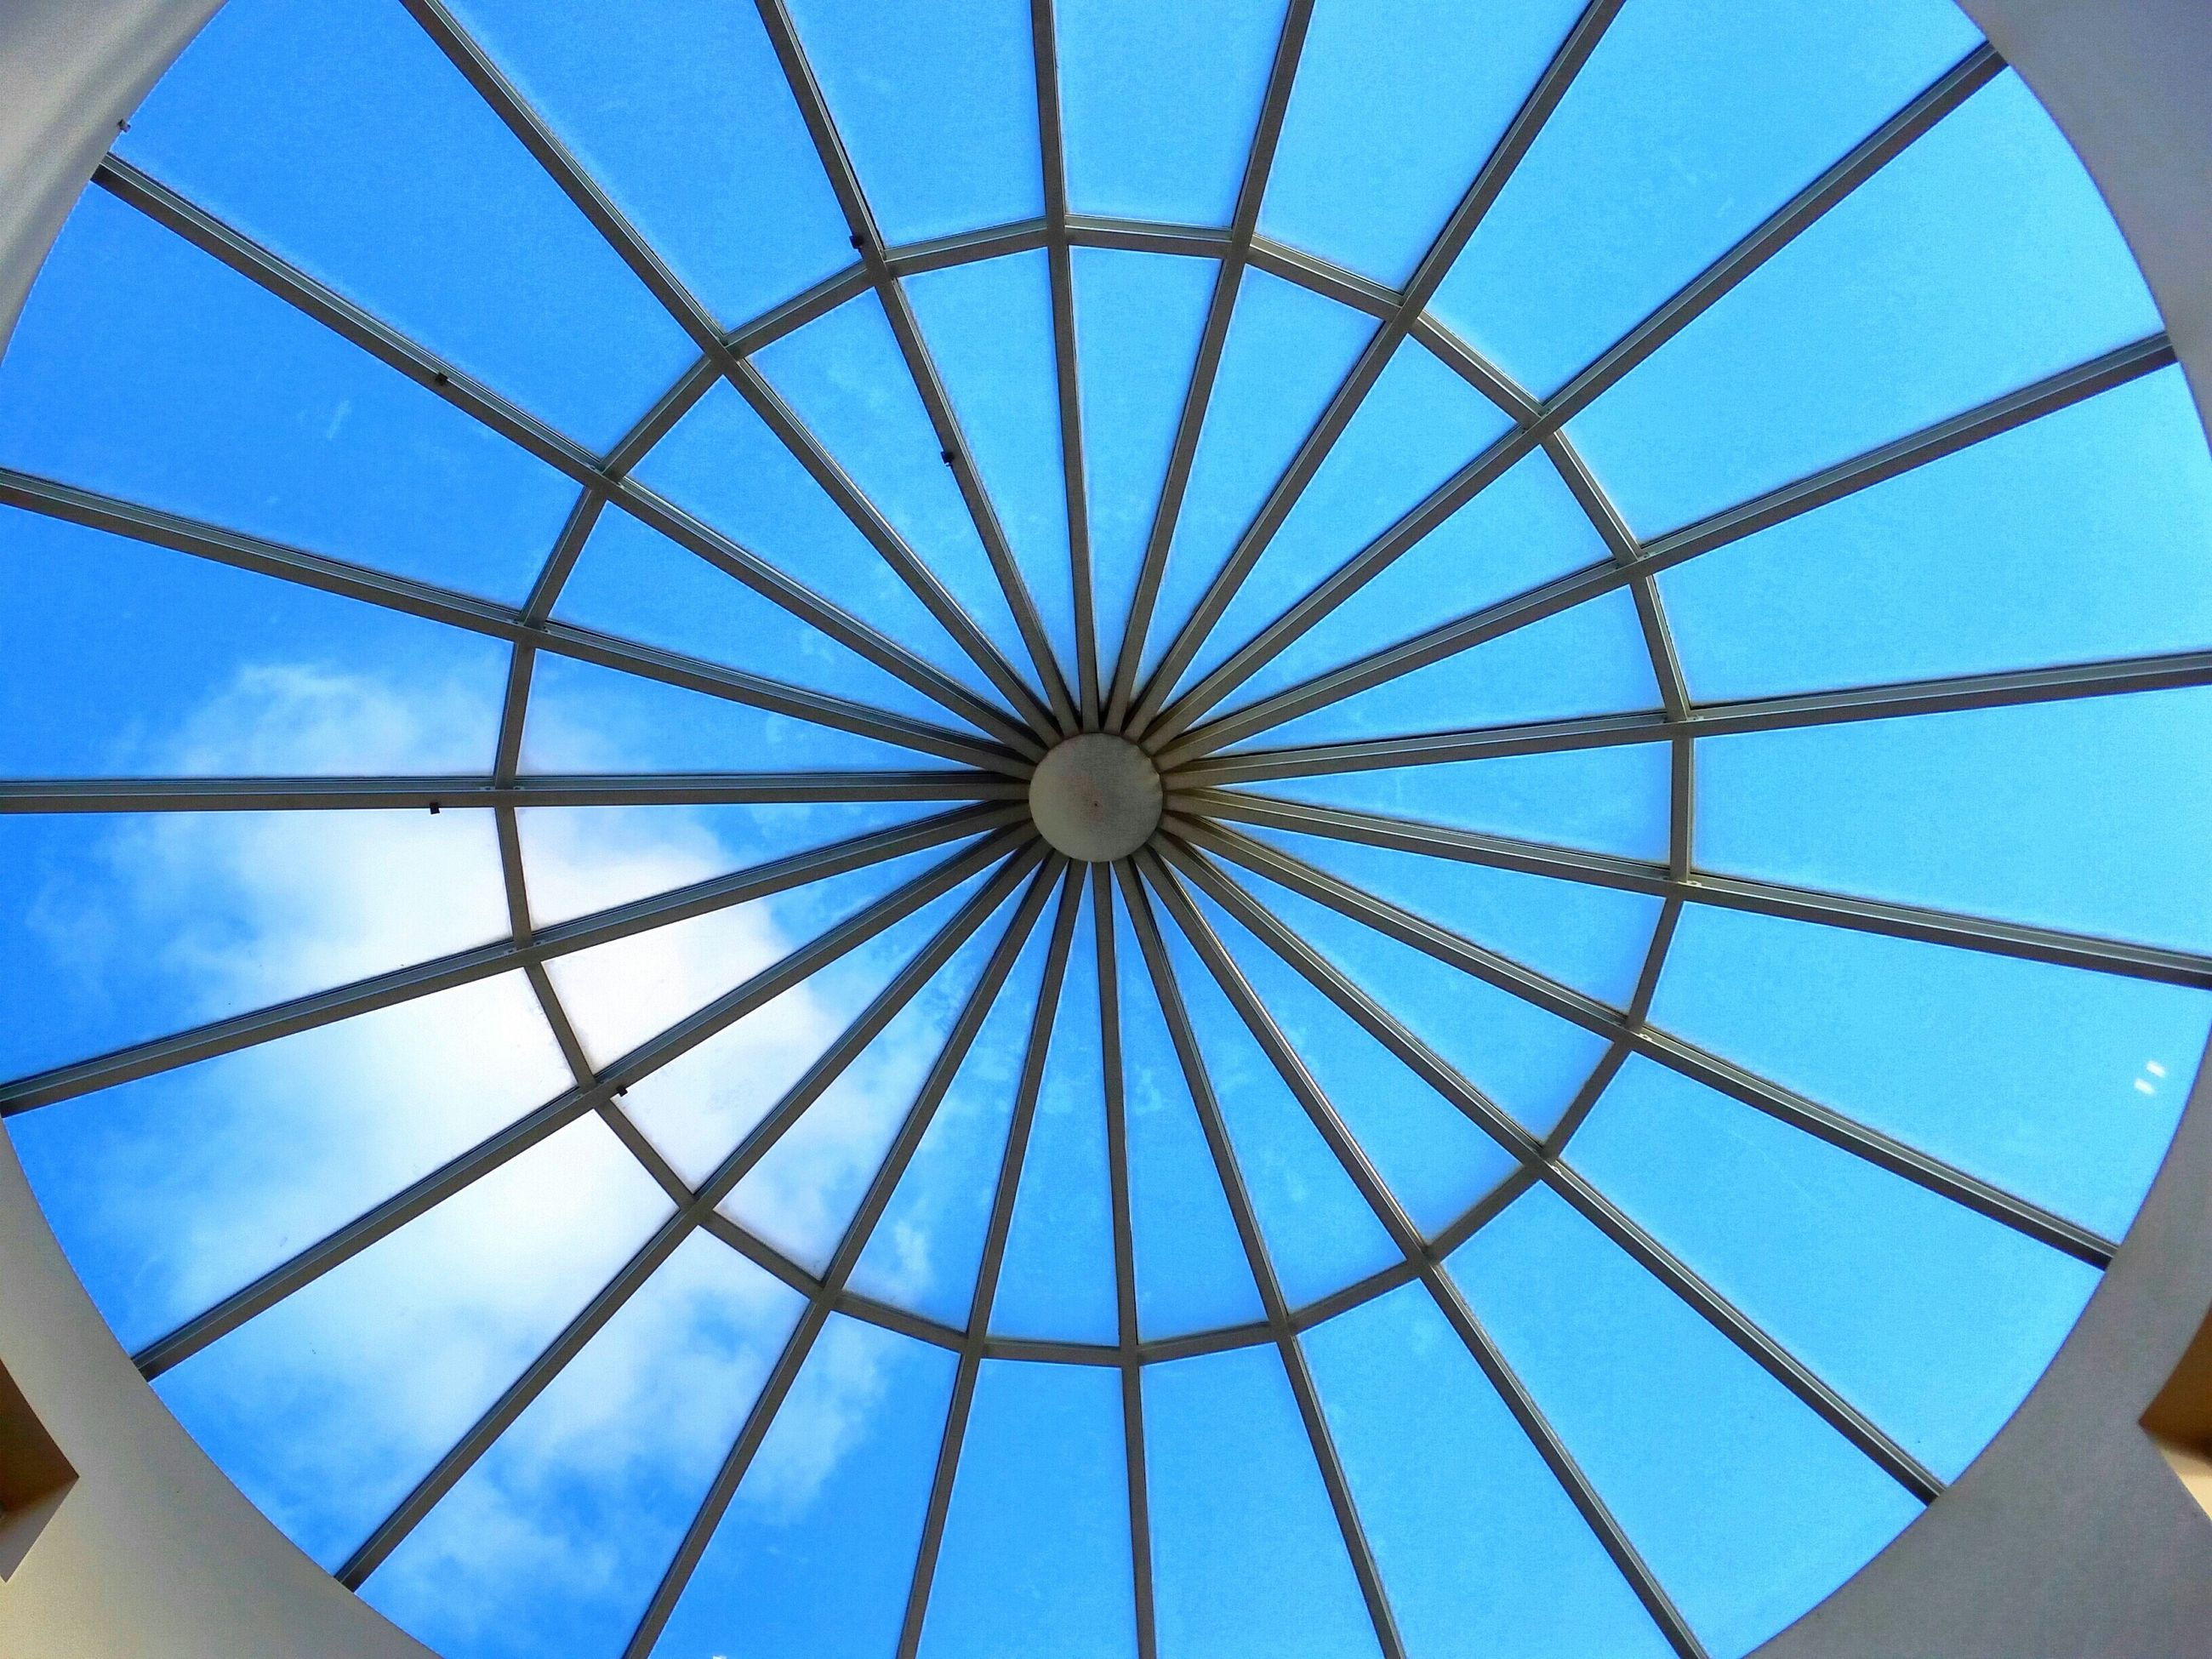 low angle view, blue, pattern, sky, geometric shape, directly below, built structure, design, architecture, ceiling, metal, full frame, circle, backgrounds, indoors, skylight, day, metallic, cloud - sky, no people